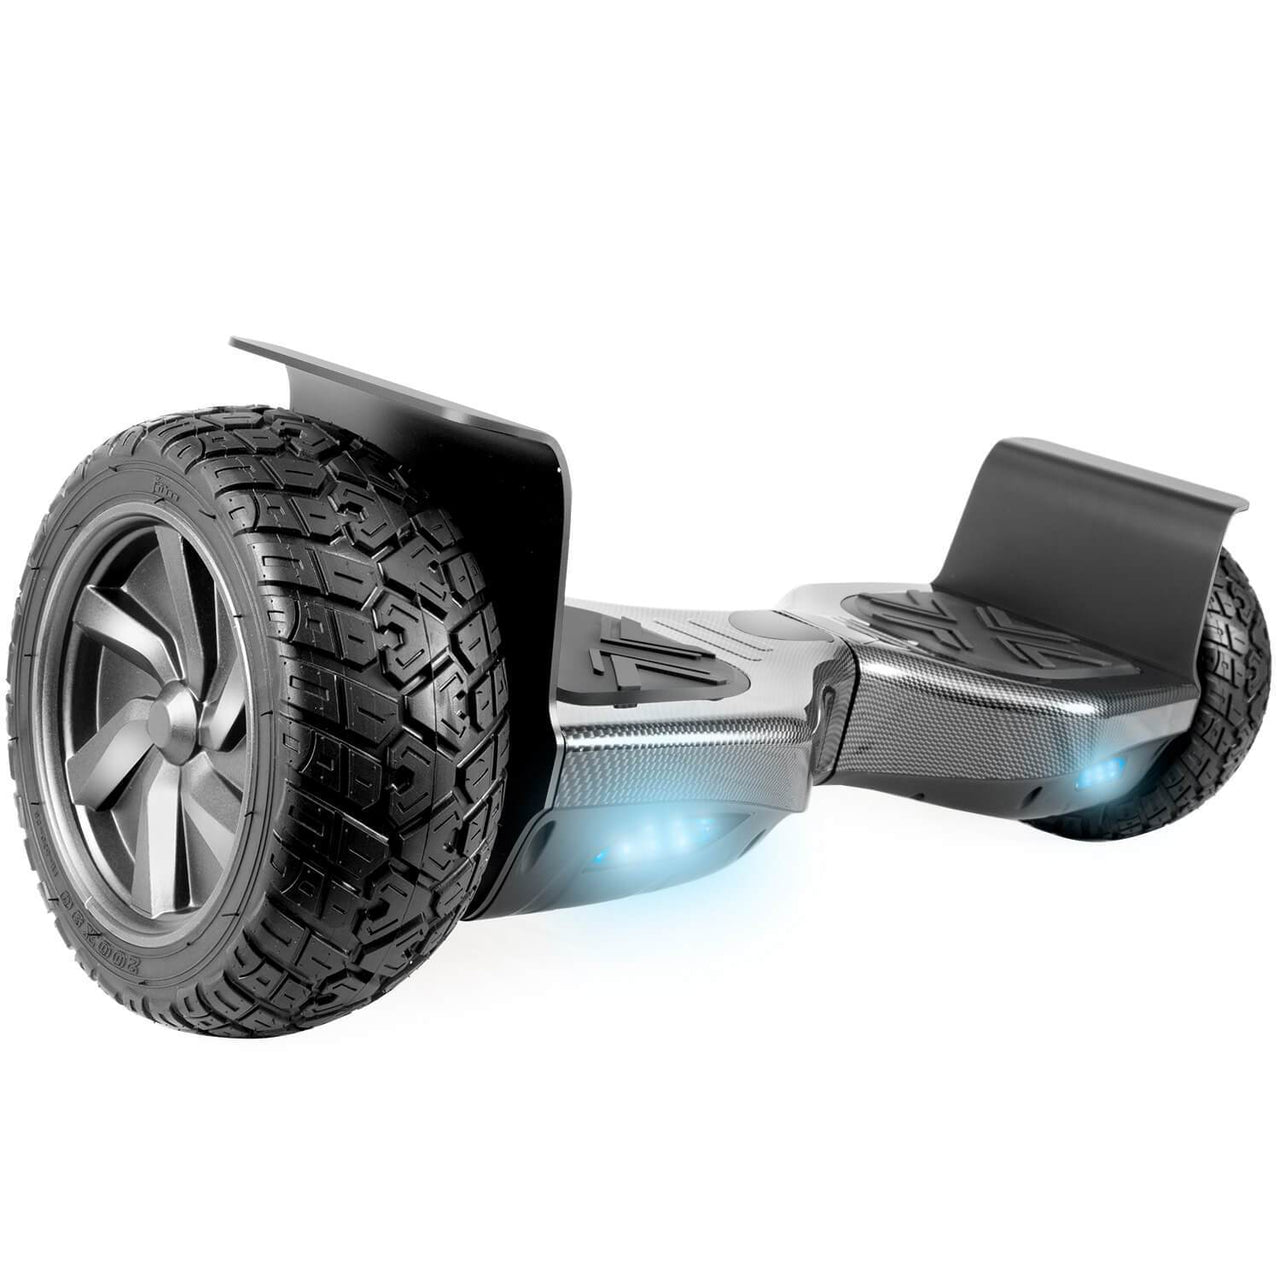 "XPRIT 8.5"" Wheels Carbon Fiber Off Road Hoverboard with UL2272 Certied"